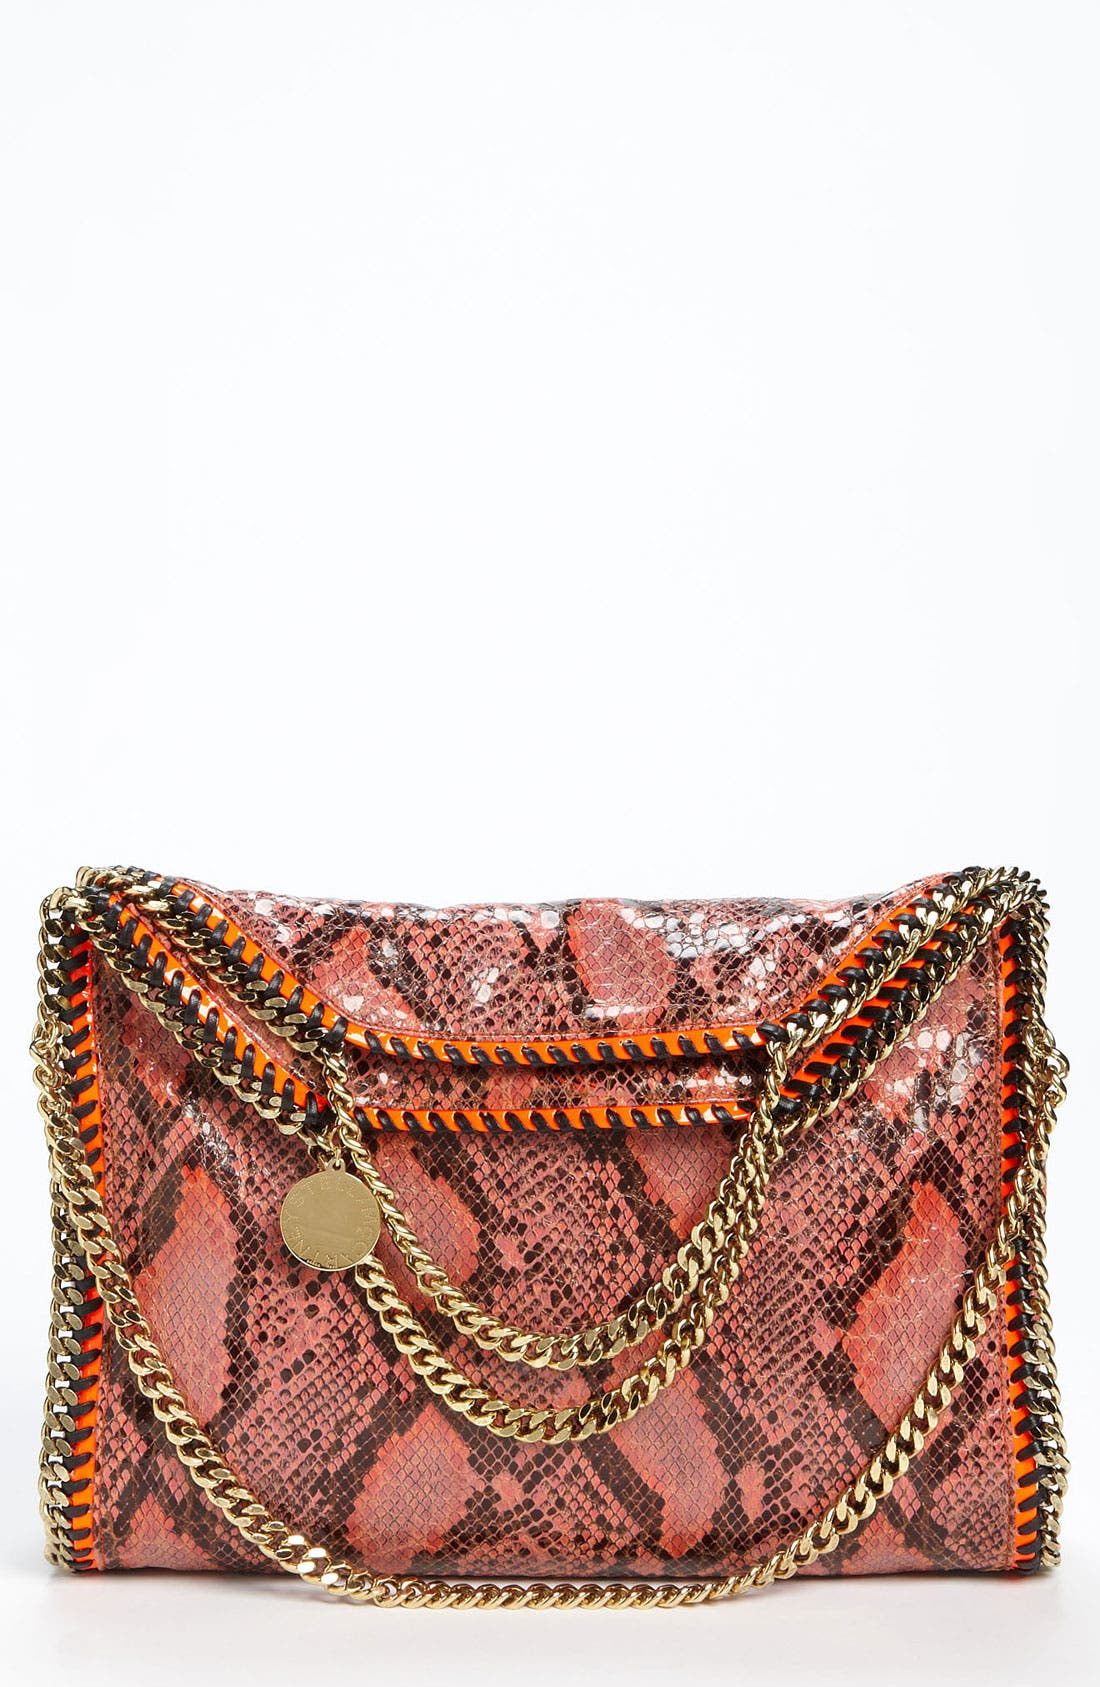 Alternate Image 1 Selected - Stella McCartney 'Falabella' Faux Python Handbag